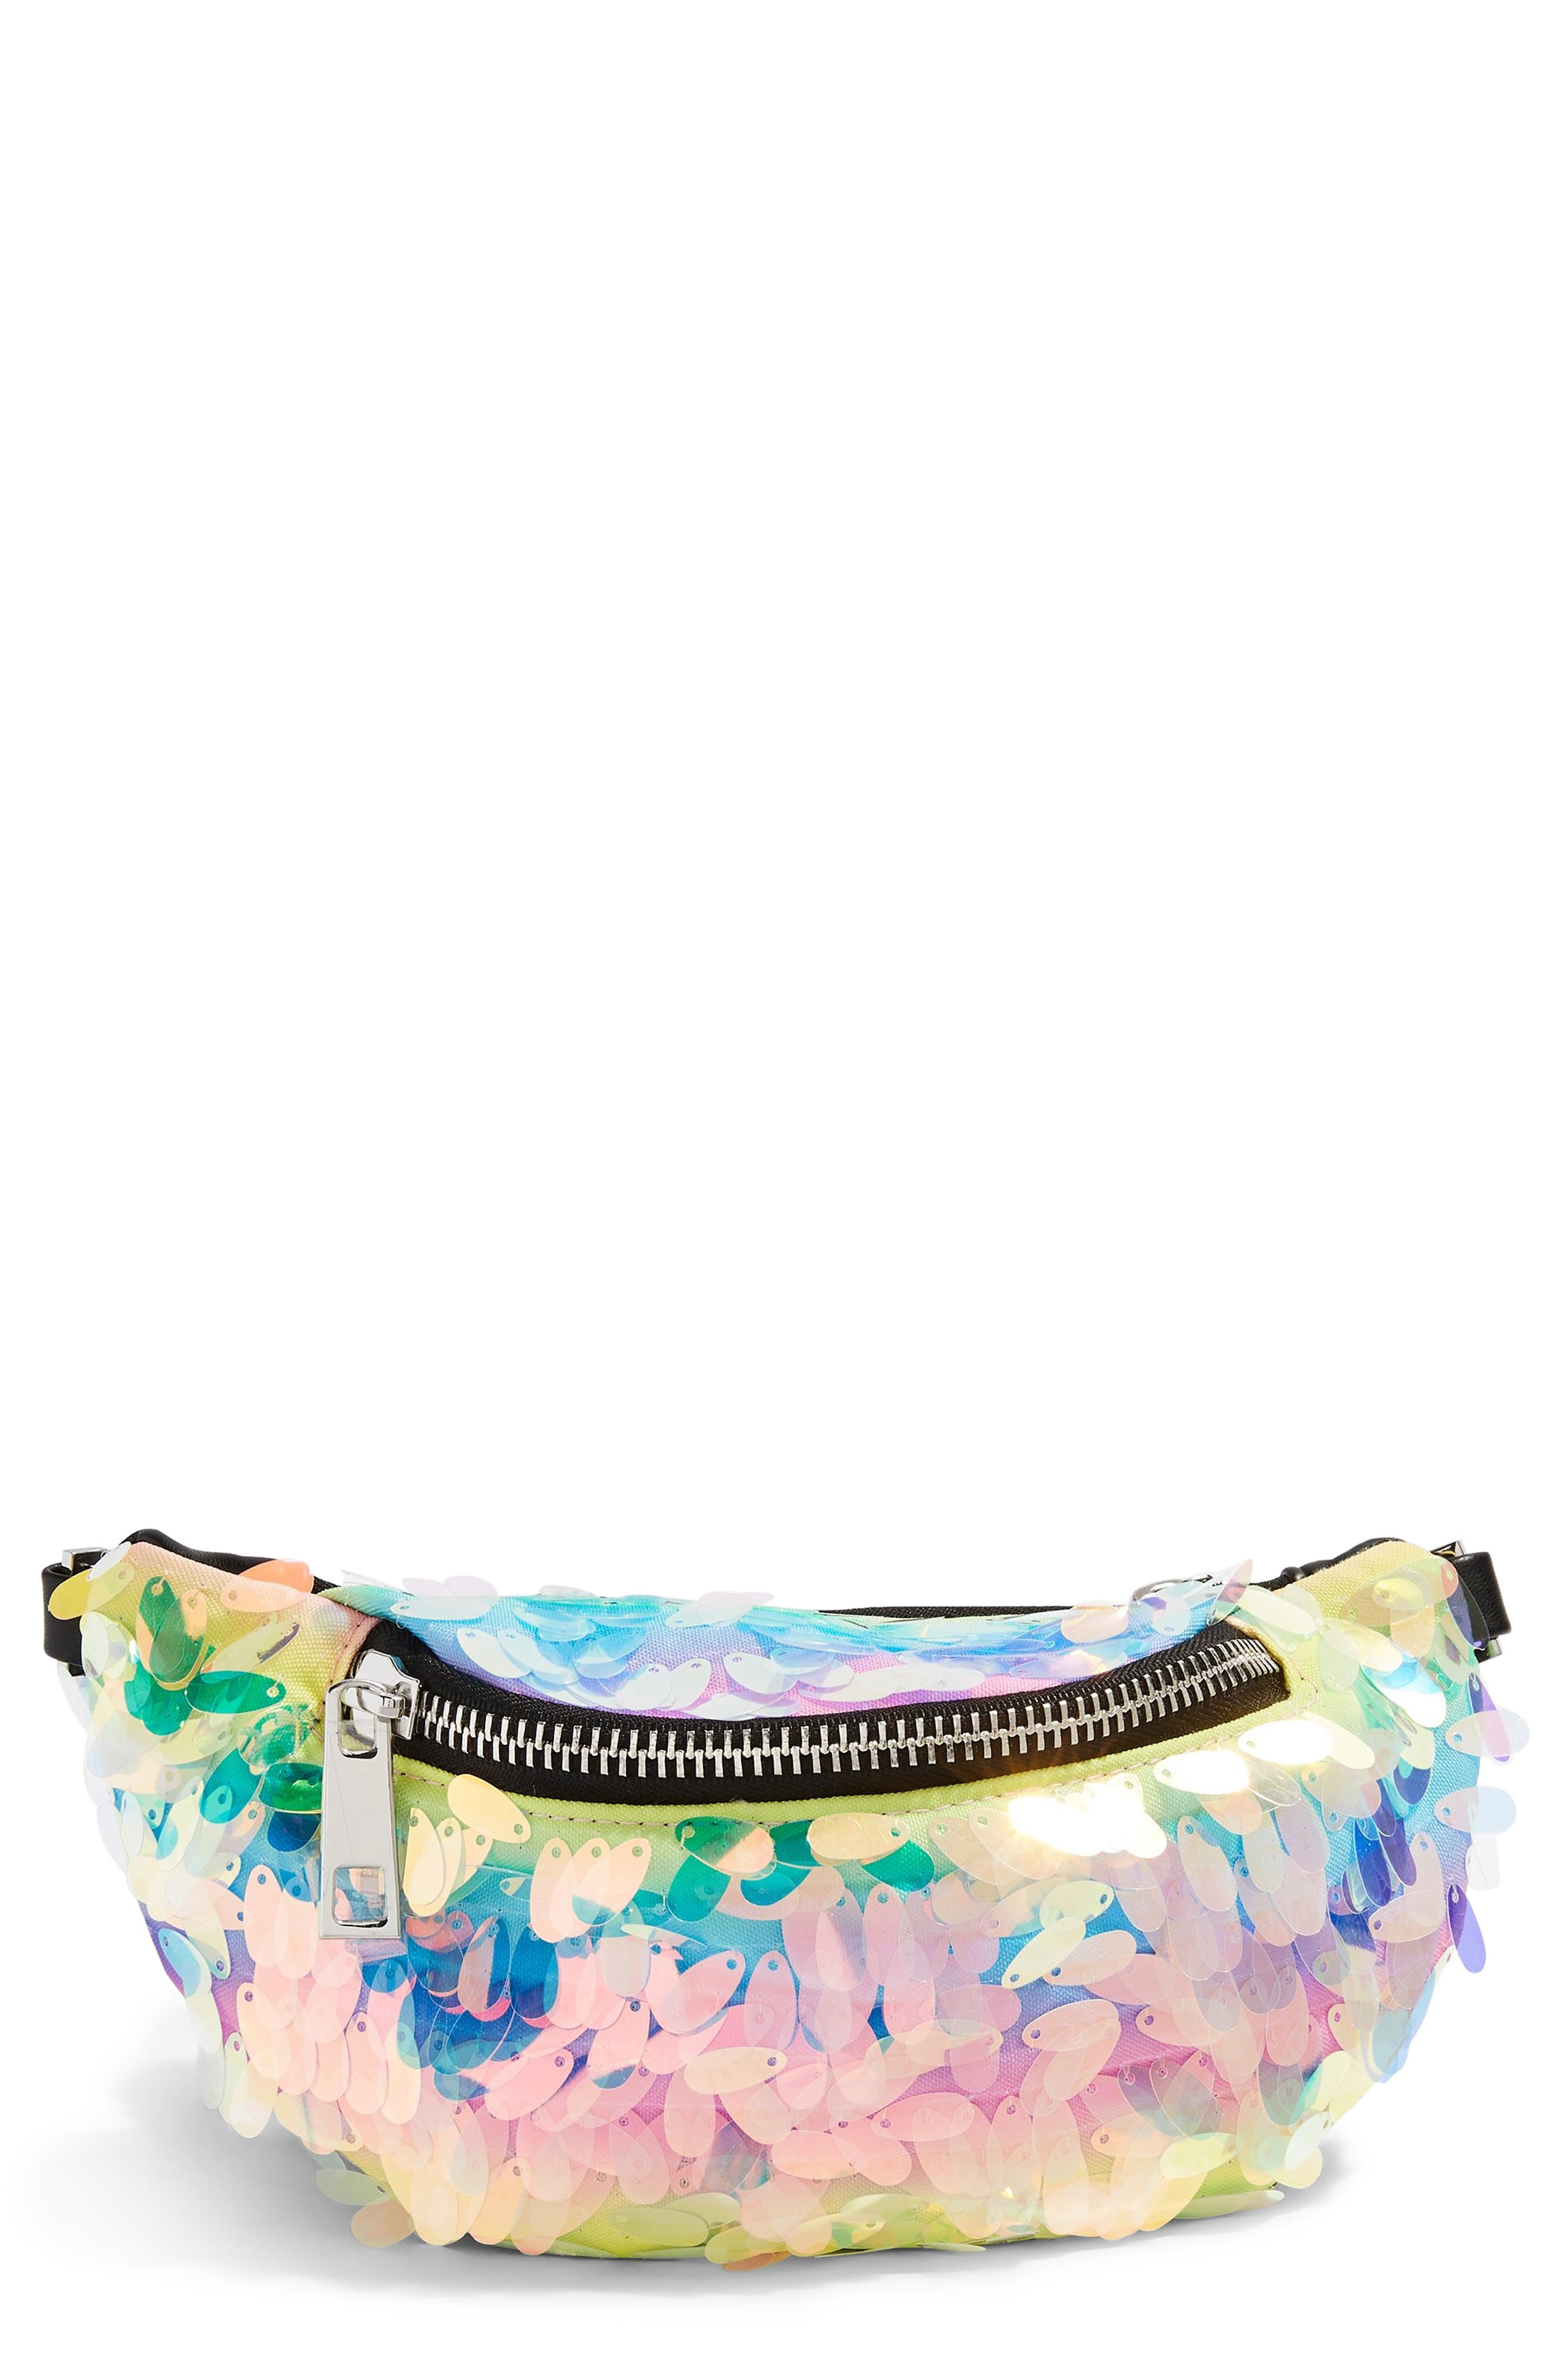 TOPSHOP, Topsho Brazil Sequin Belt Bag, Main thumbnail 1, color, BLACK MULTI